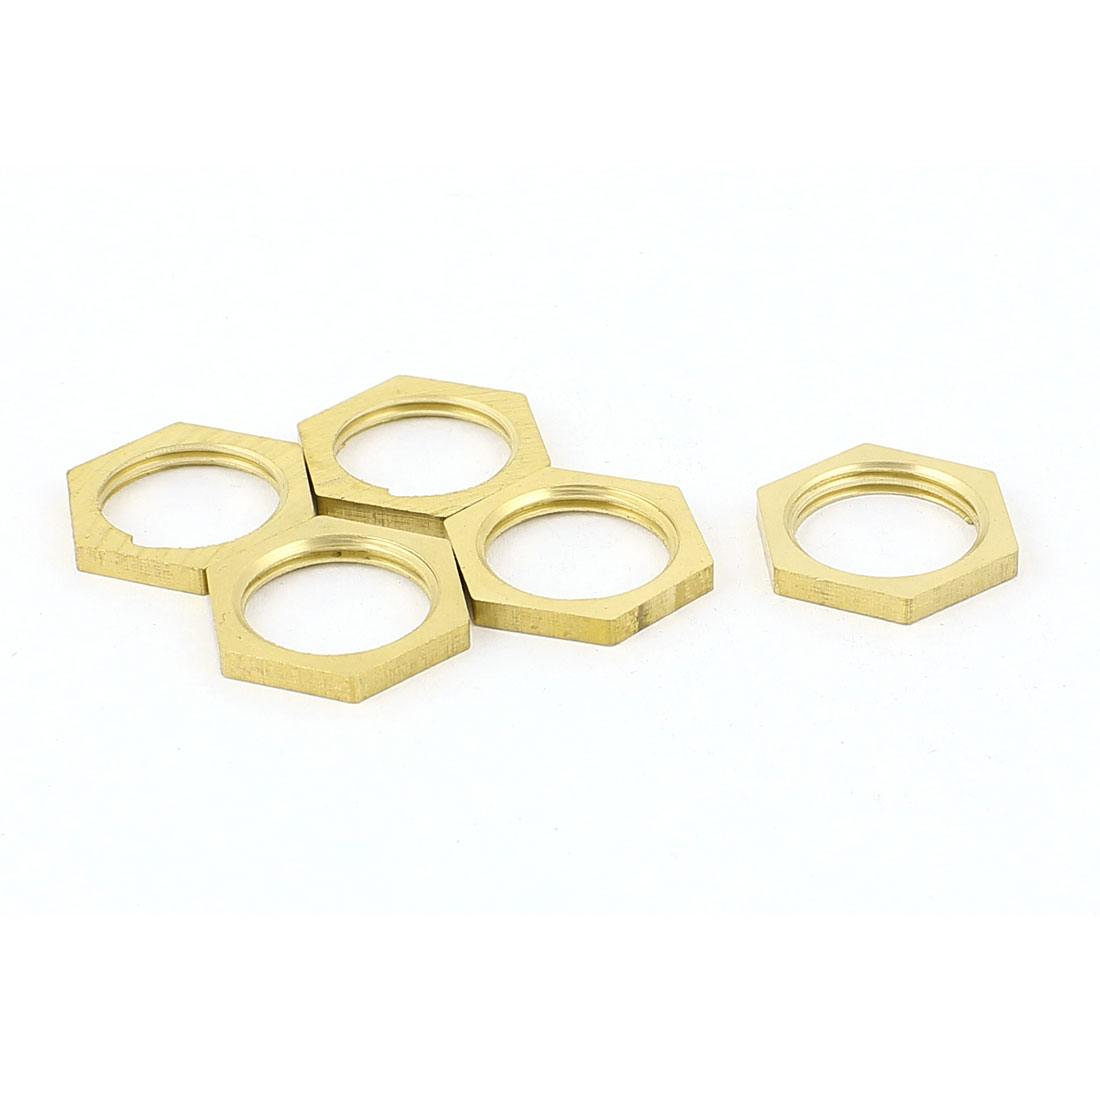 3/8BSP Female Thread Brass Pipe Fitting Hex Lock Nut 5pcs